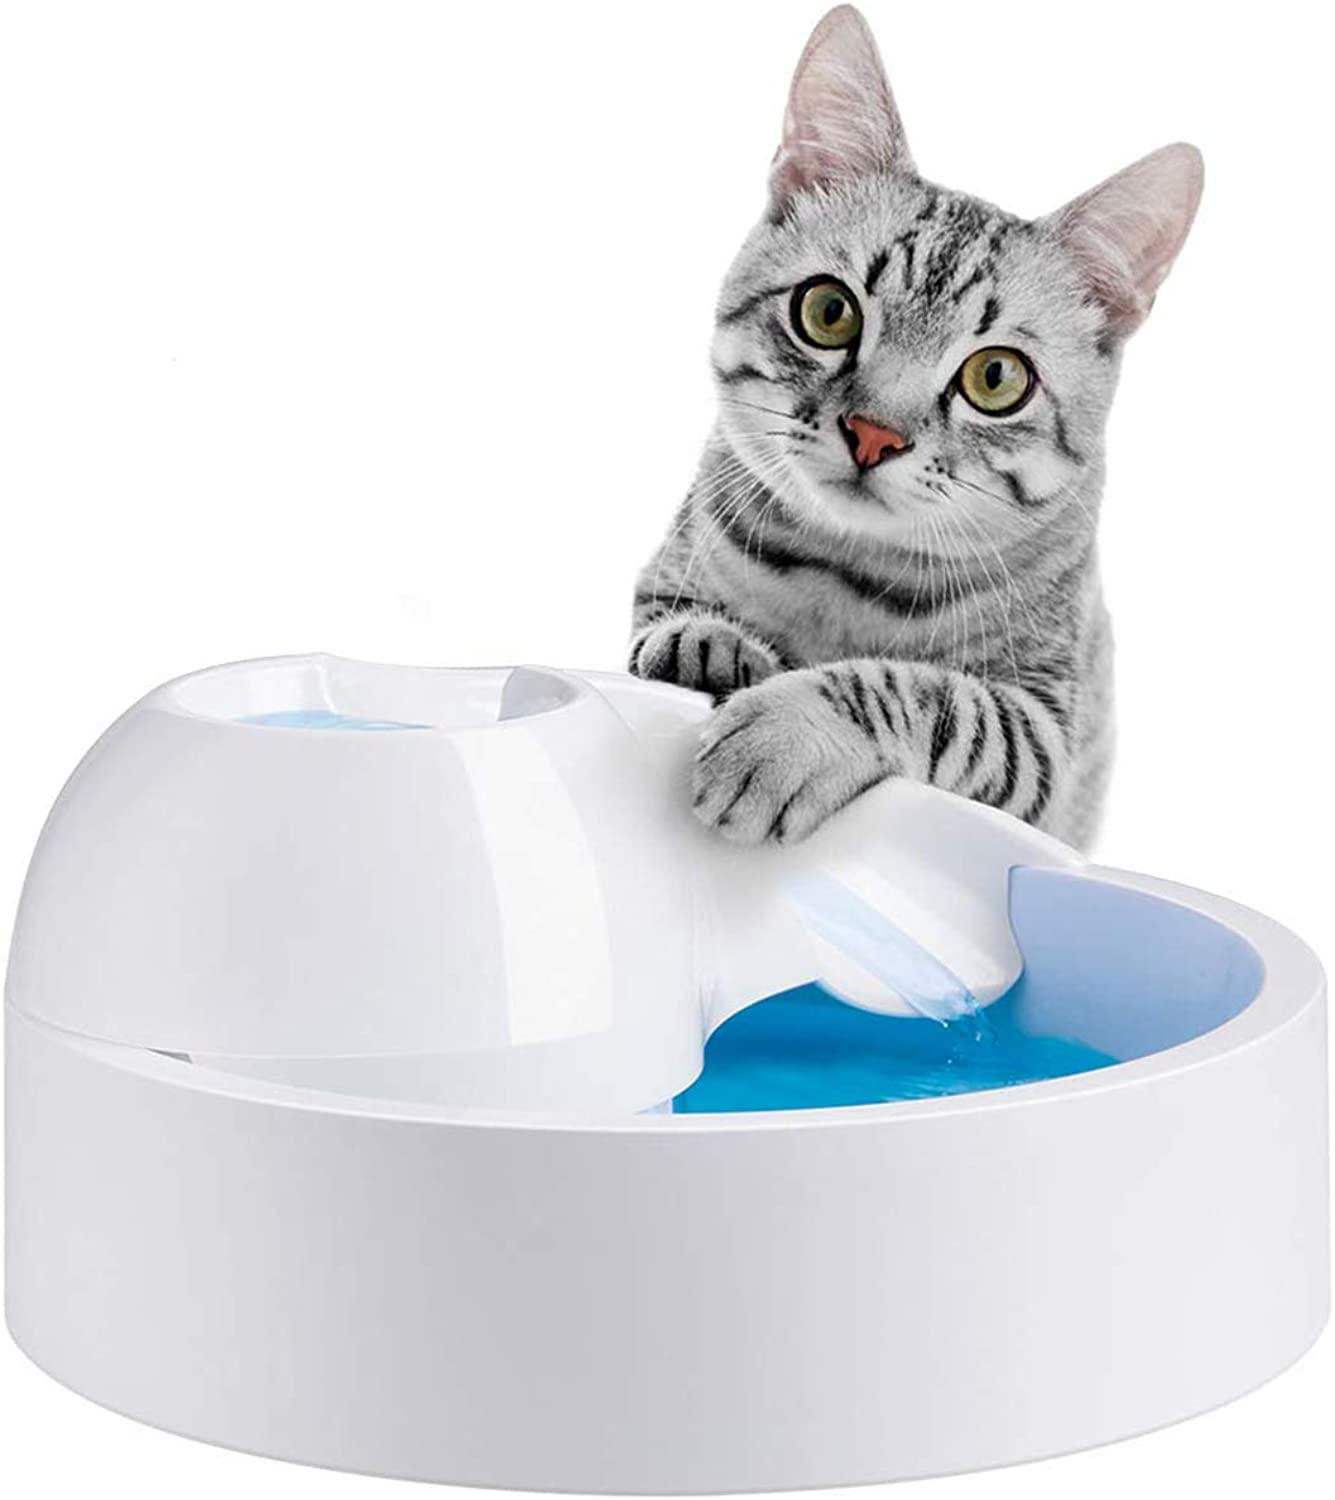 Cats Fountain, Water Fountain with 1.8 L (64 oz) Capacity, Activated Coal Filtration and Quiet Circulation (White).